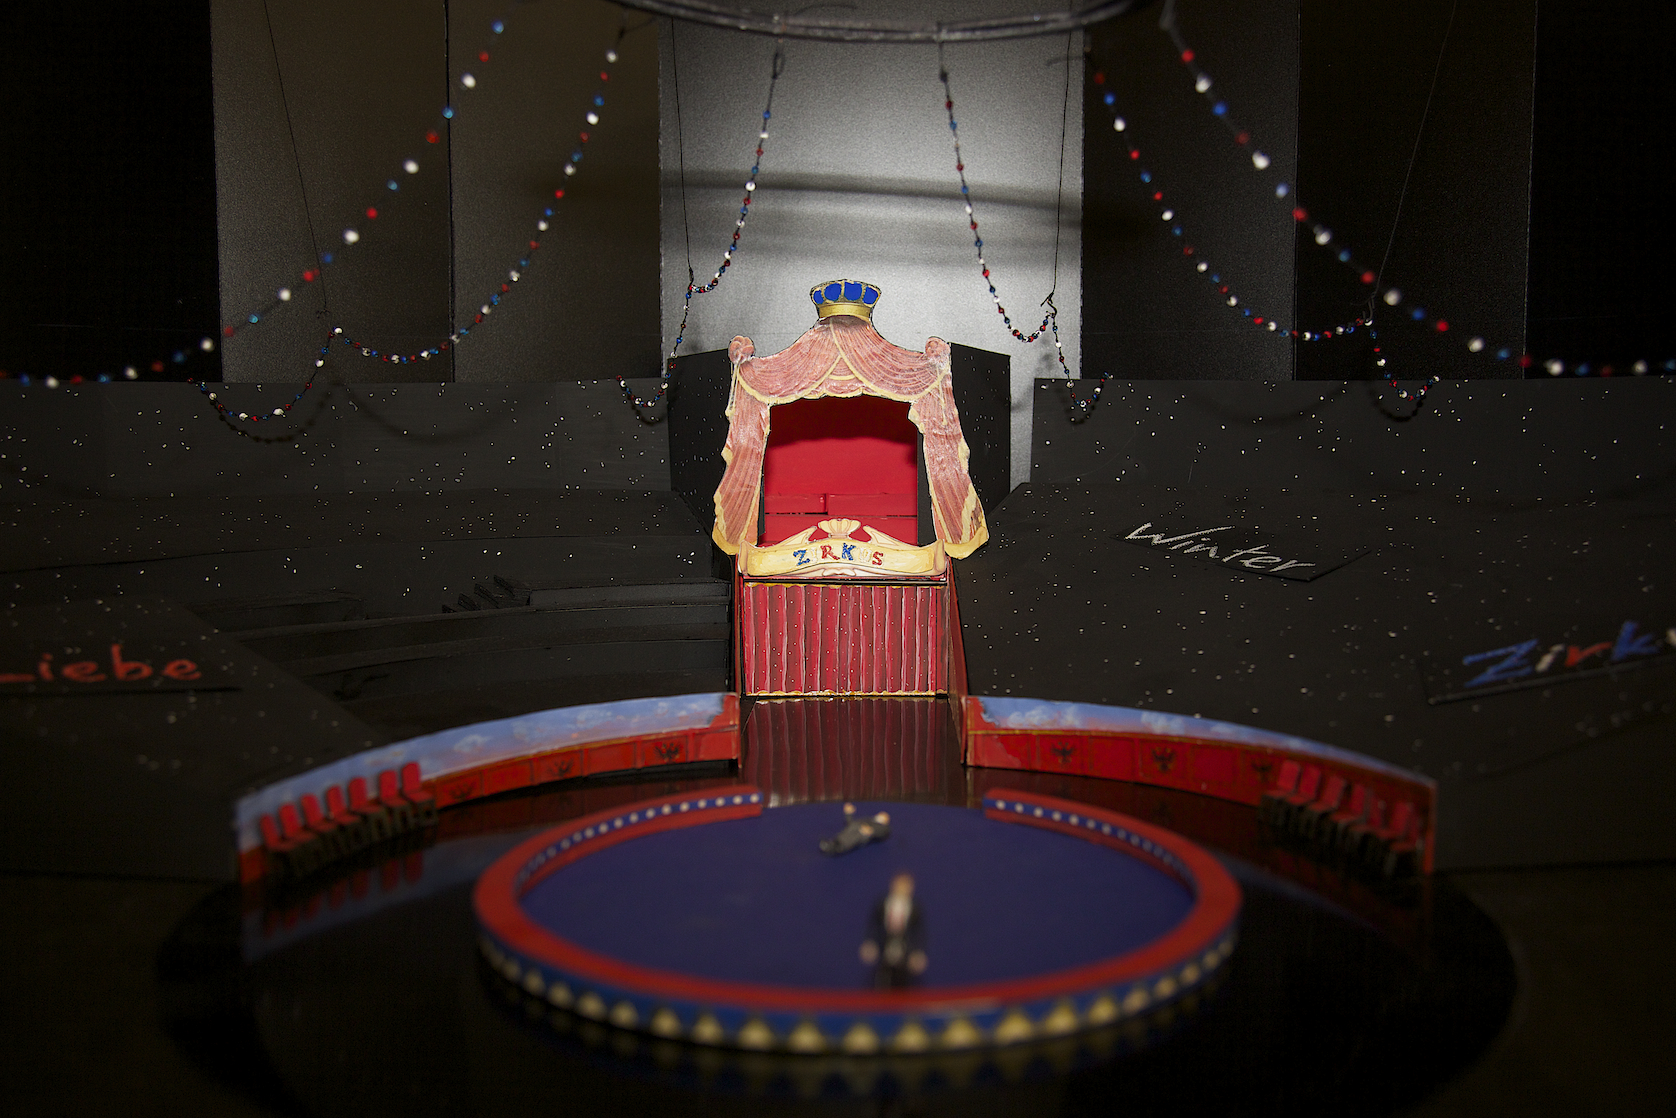 A model of the 2014 stage set by Rainer Sinell. (Photo: Christian Zach/Theater am Gärtnerplatz Presse)